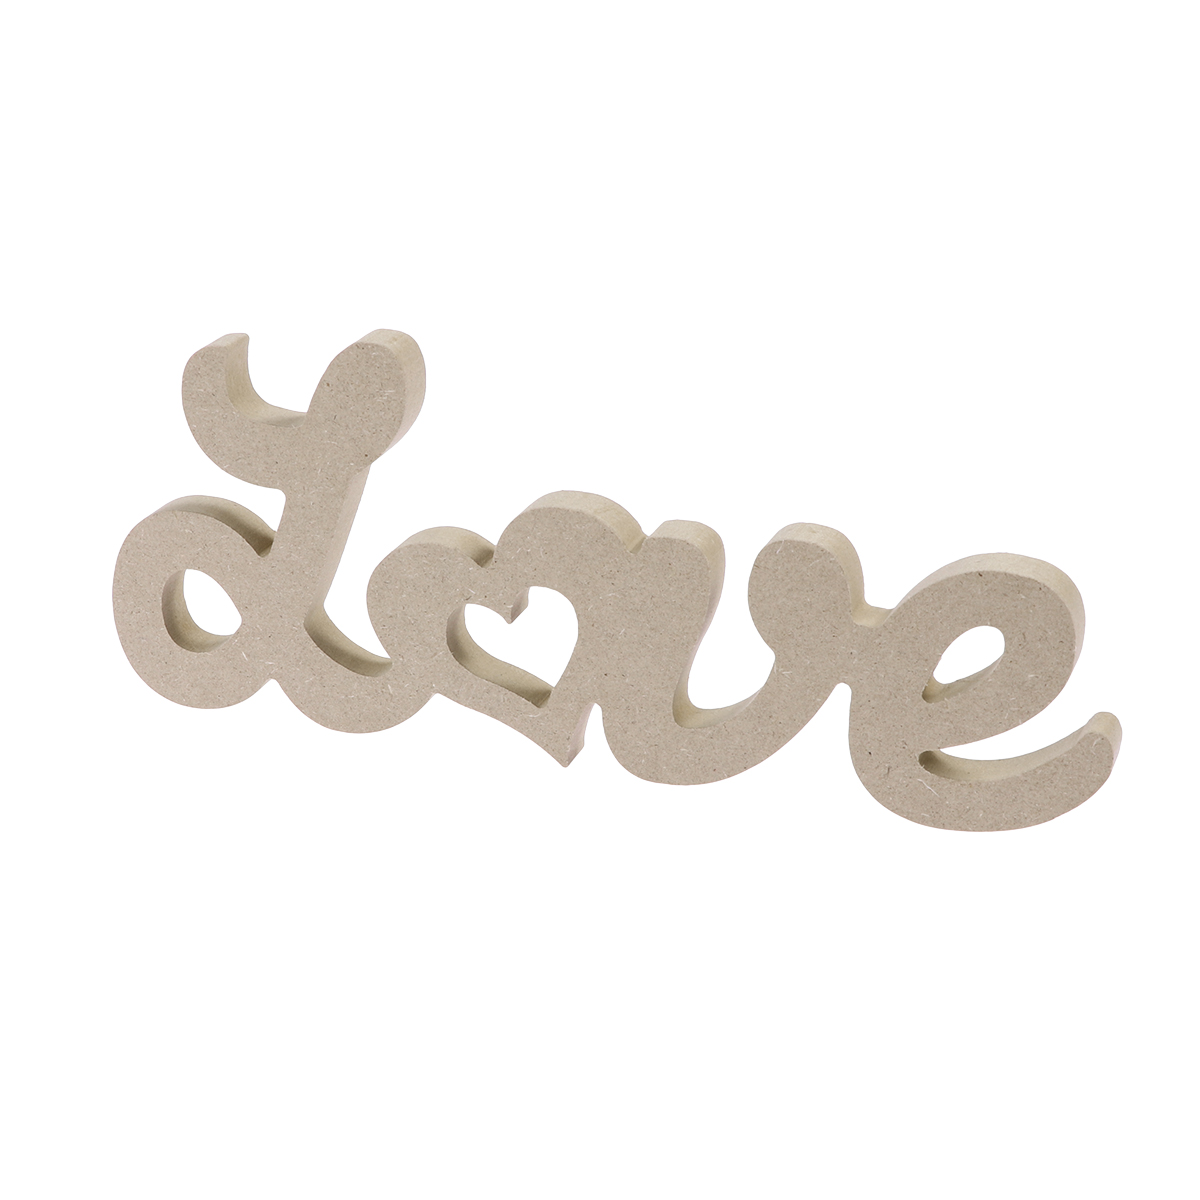 Generous Mr And Mrs Letters Sign Wooden Standing Top Sweetheart Table Wedding Party Decor Ballons & Accessories Event & Party